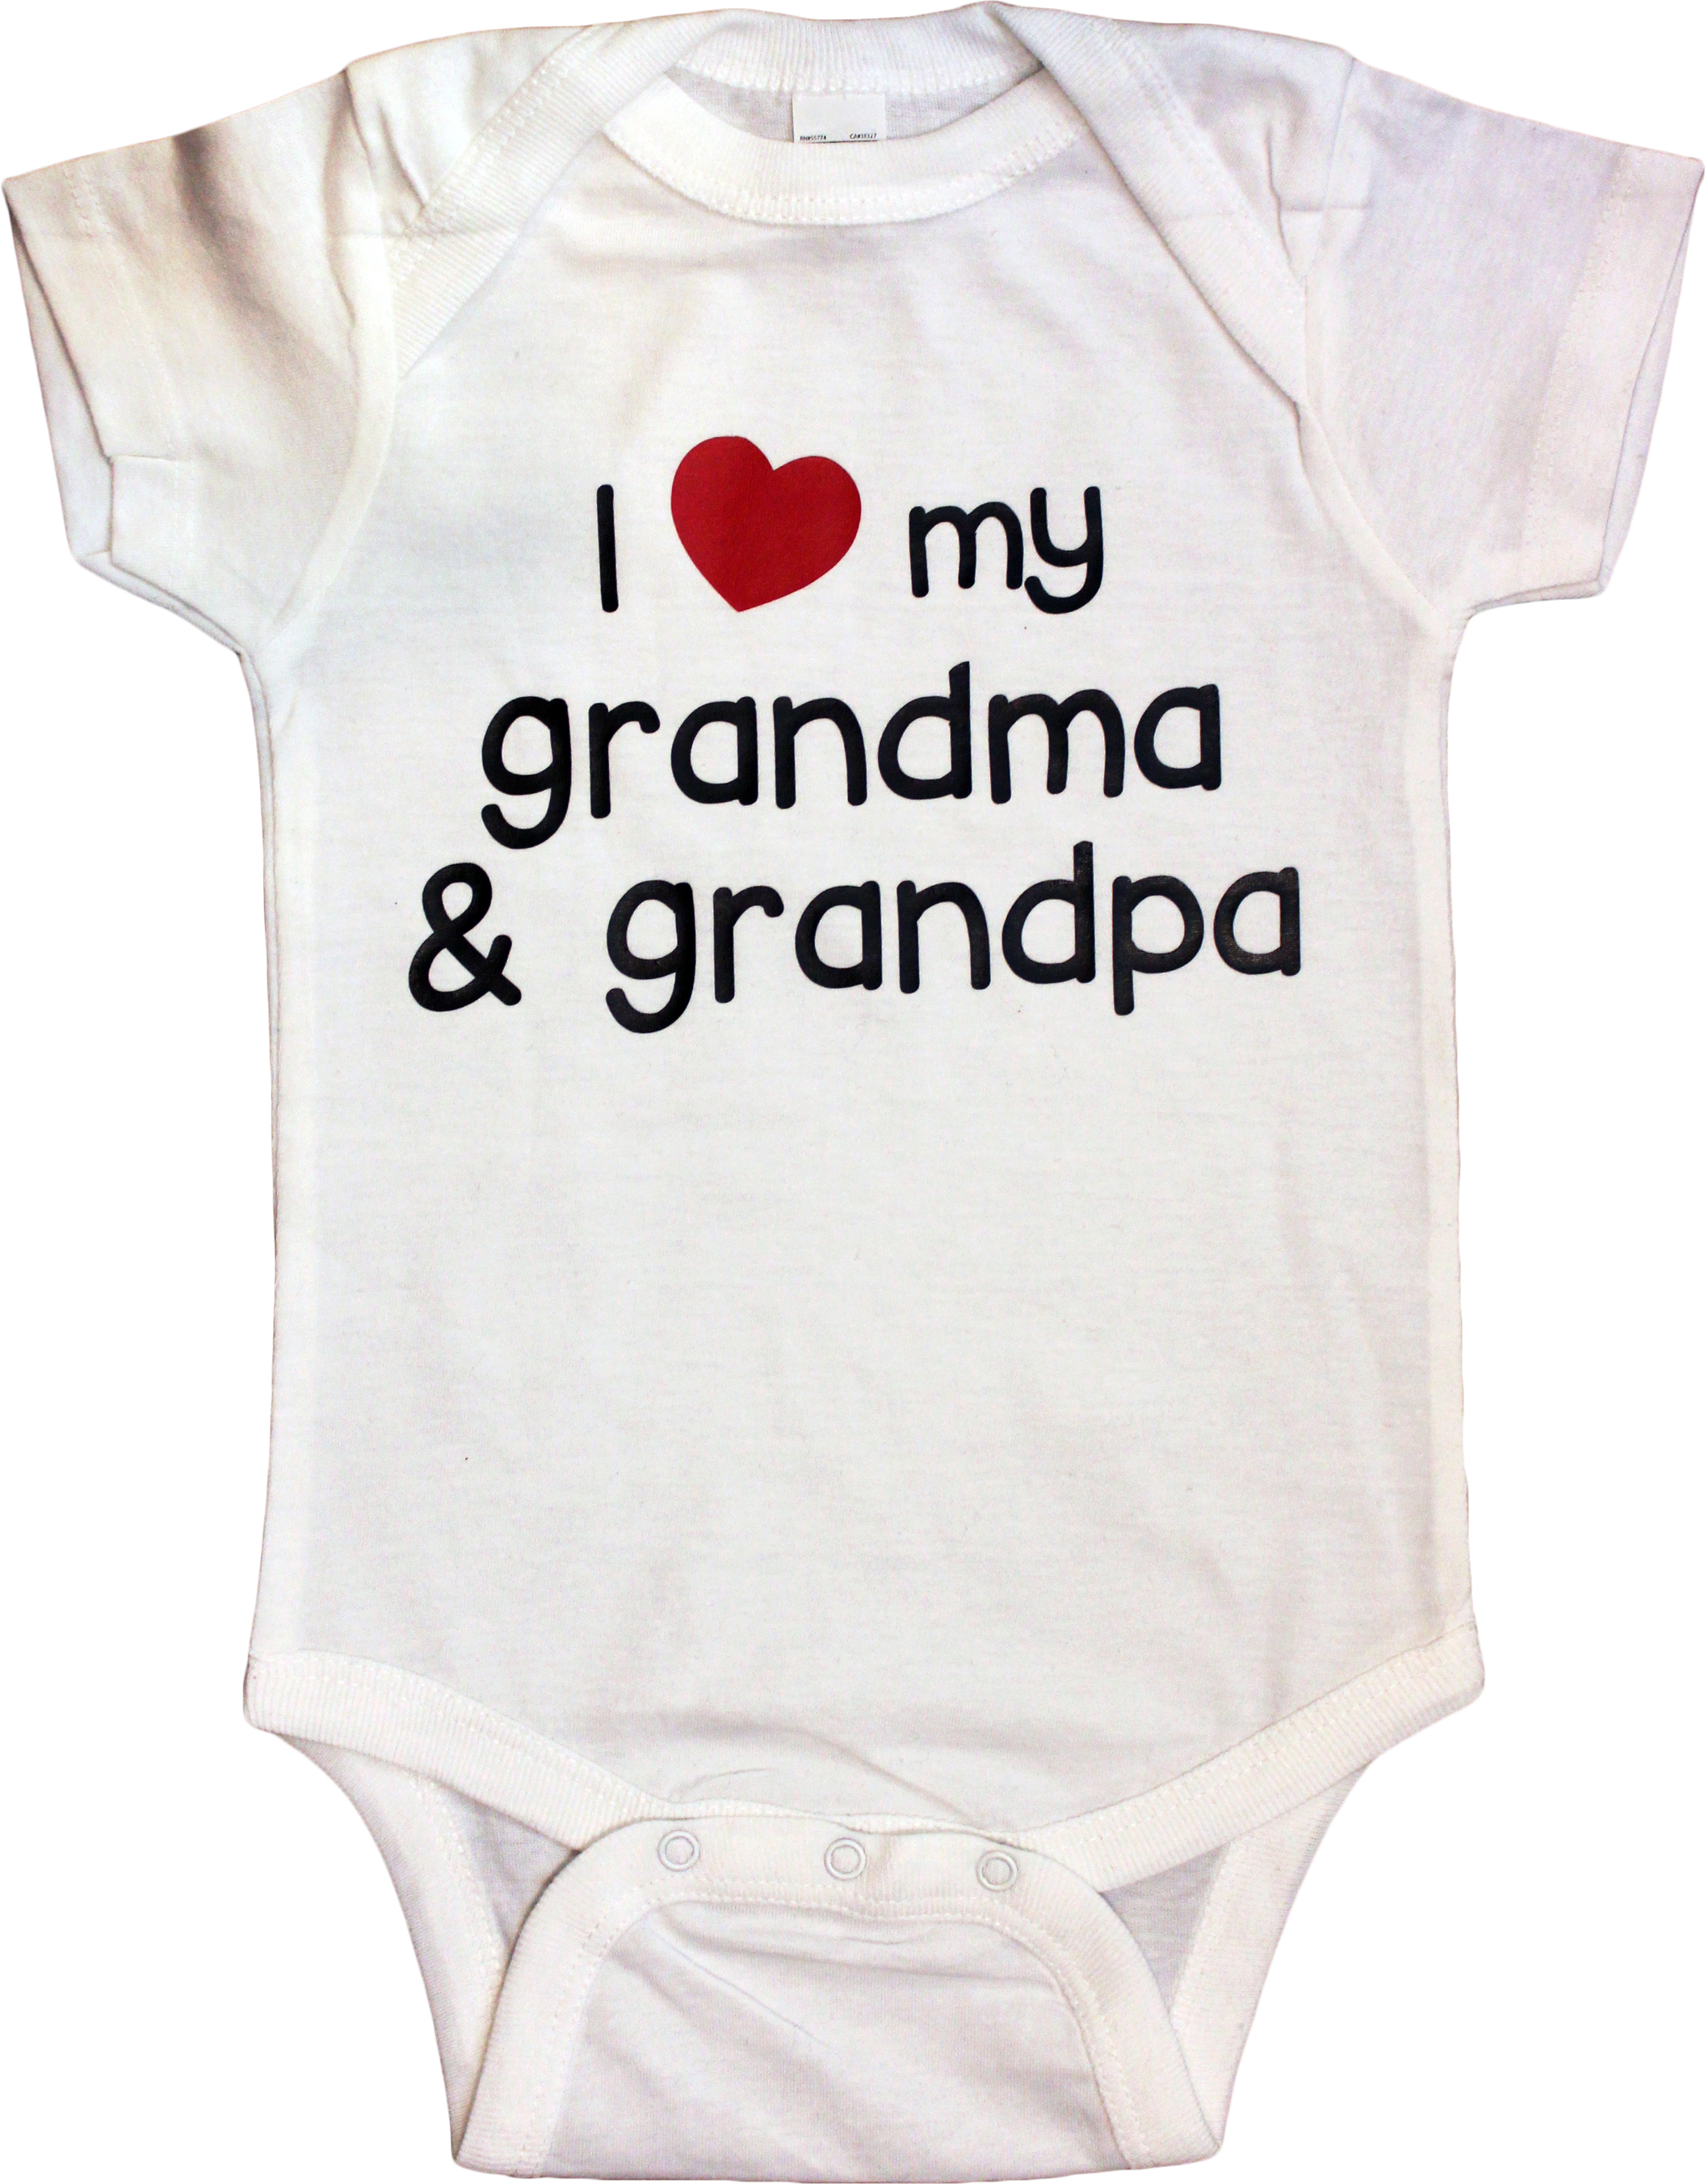 I love grandma and grandpa baby clothes